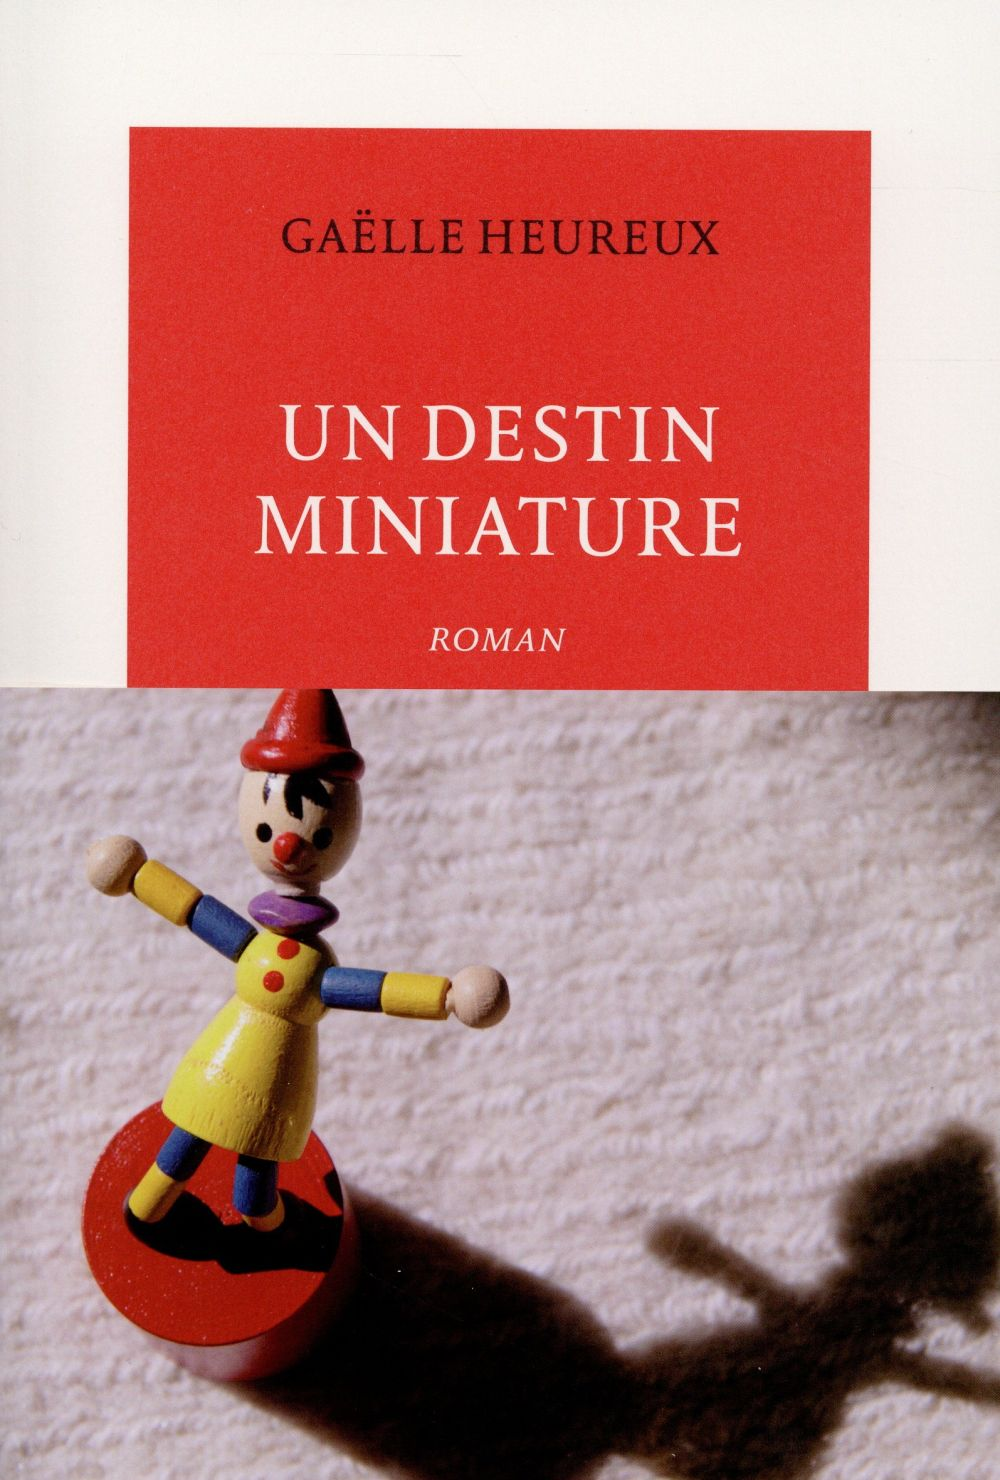 Un destin miniature